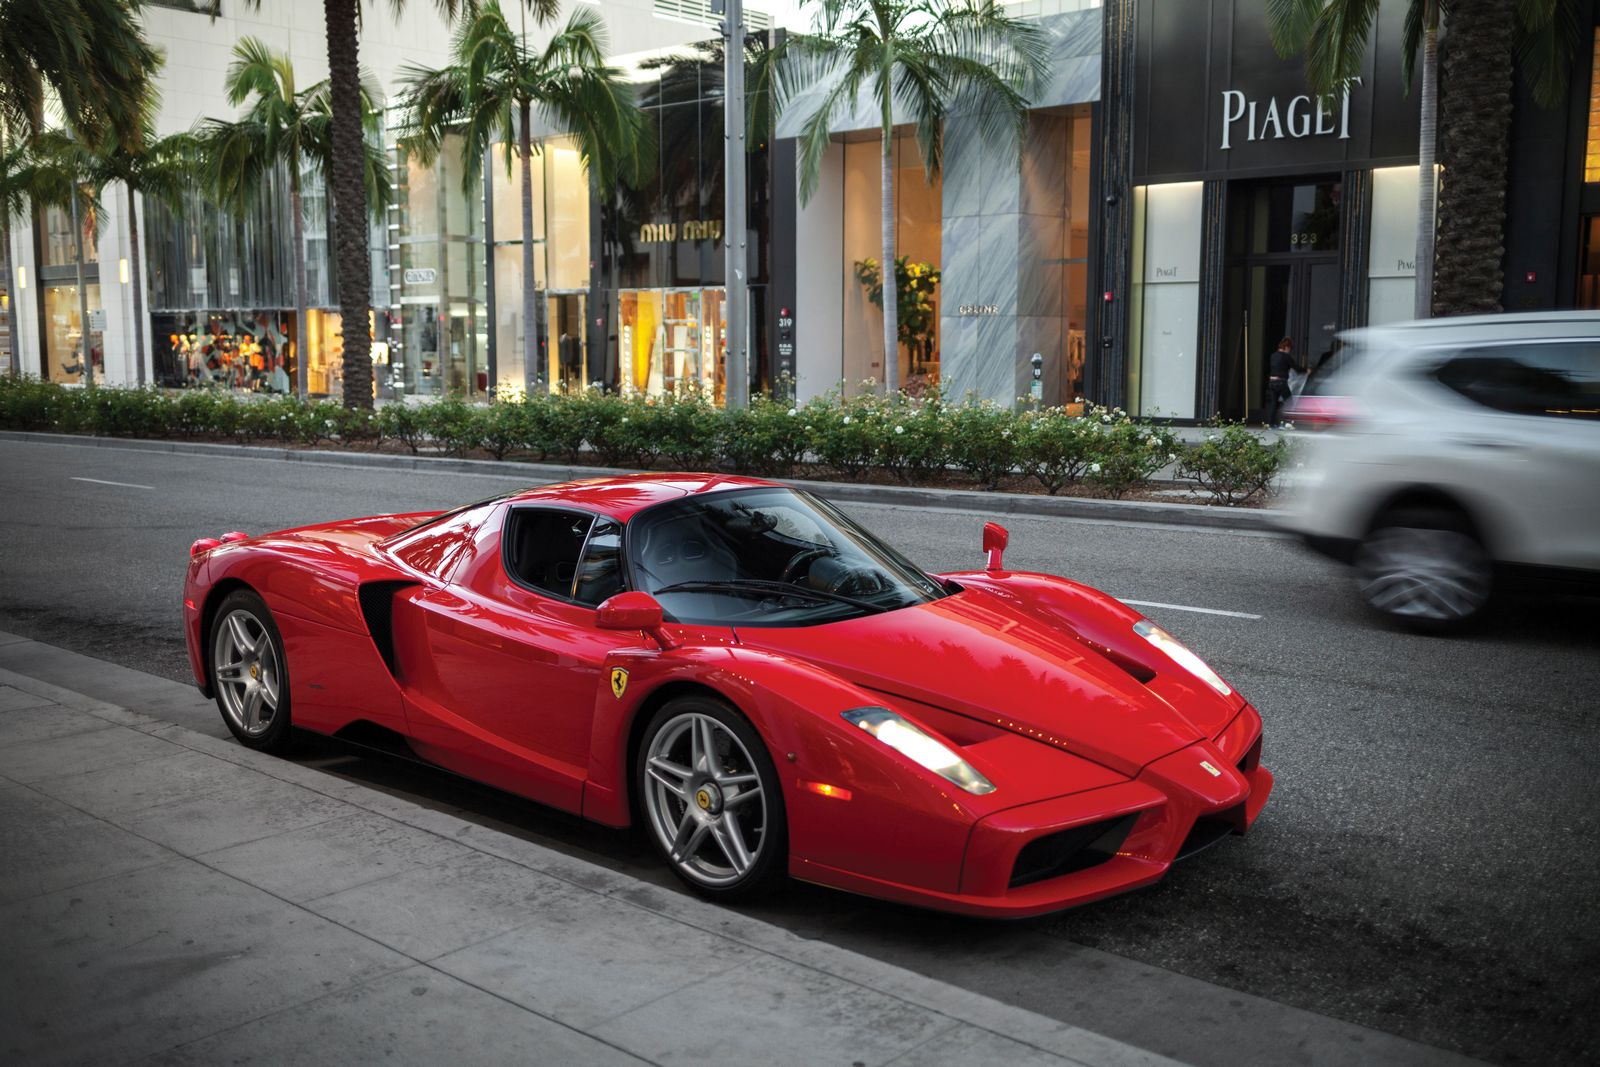 Floyd Mayweather S Ferrari Enzo Sells For 3 3 Million At